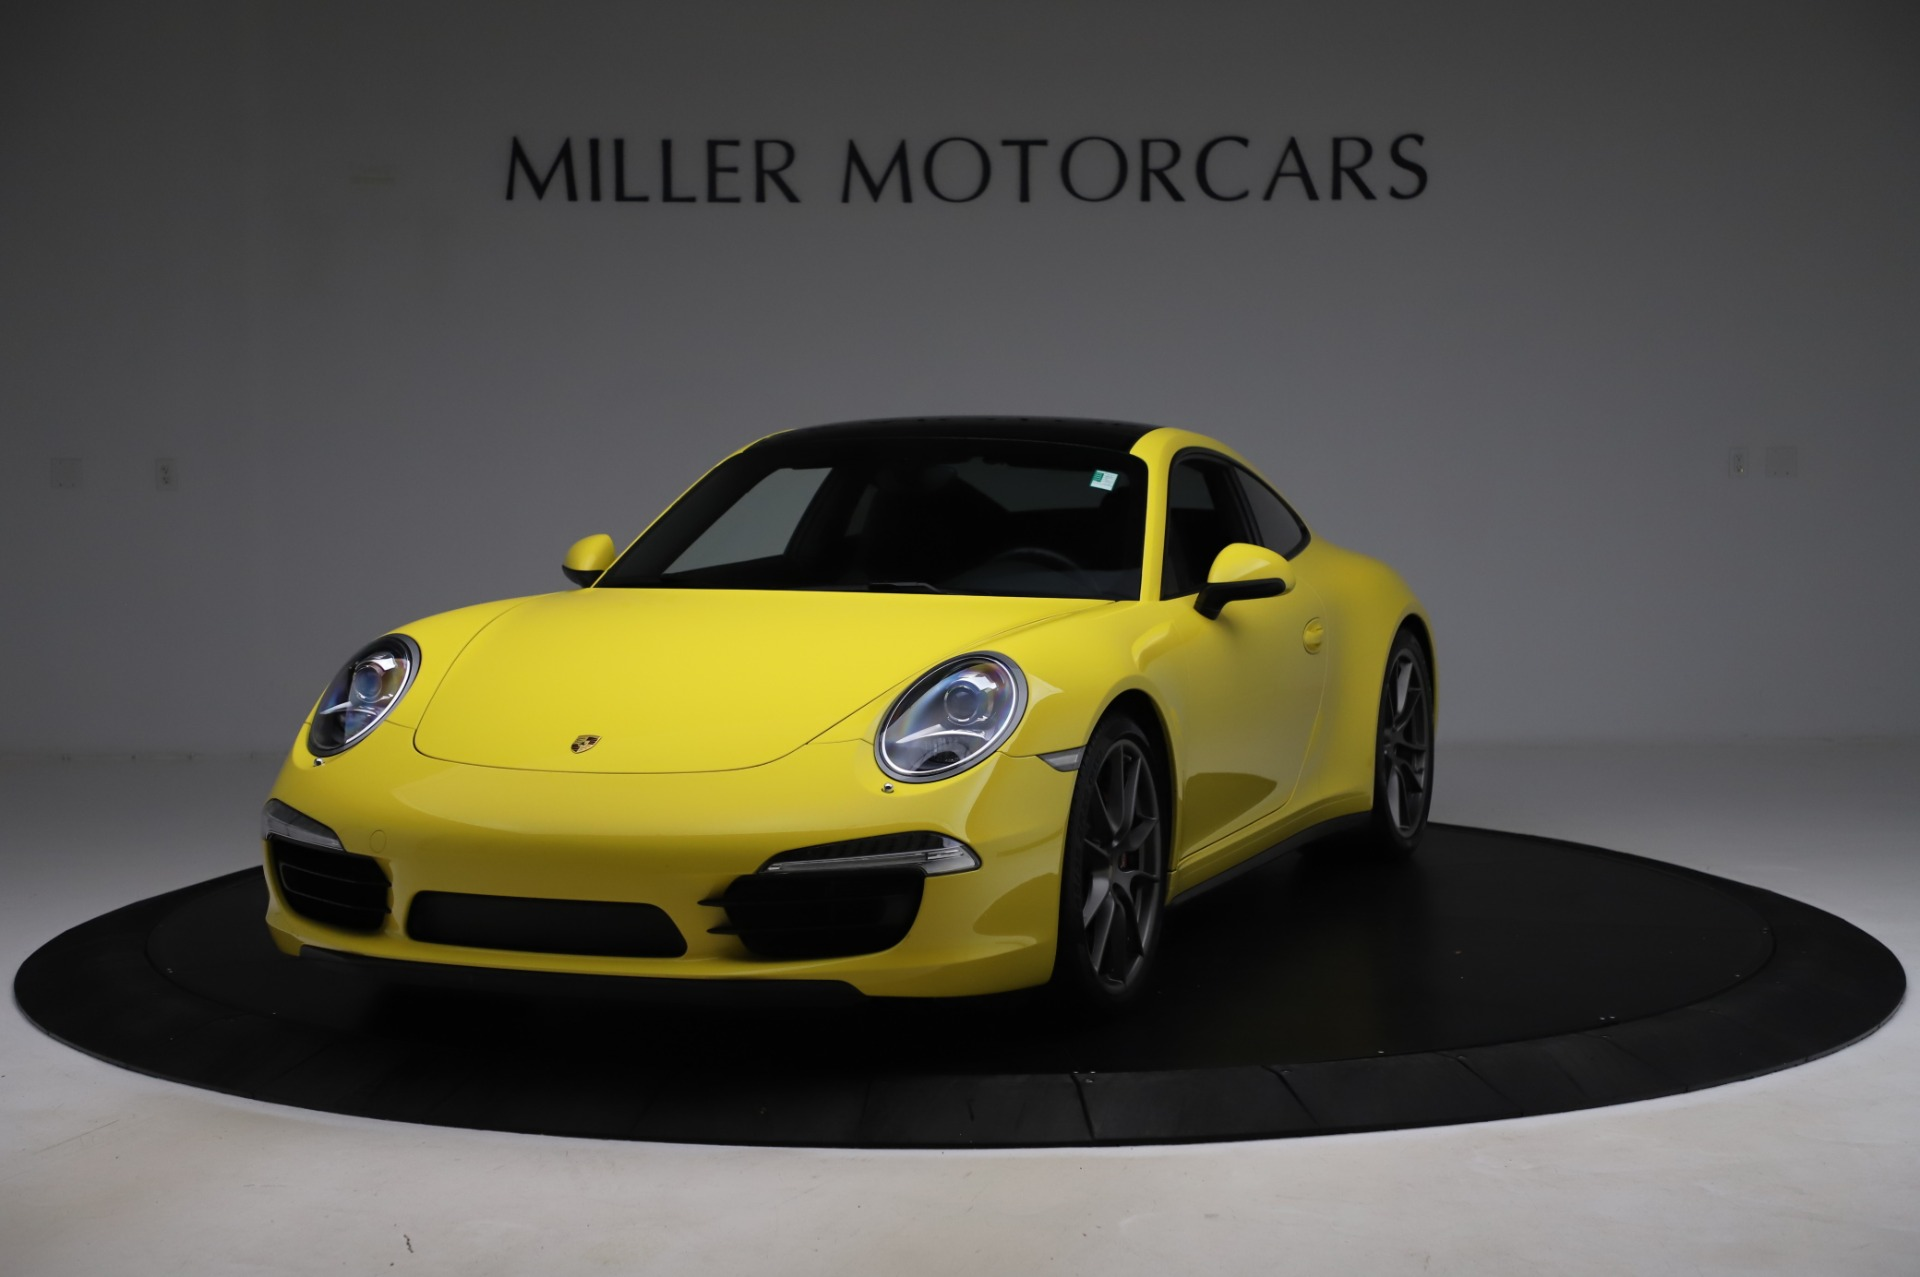 Used 2013 Porsche 911 Carrera 4S for sale $74,900 at Pagani of Greenwich in Greenwich CT 06830 1